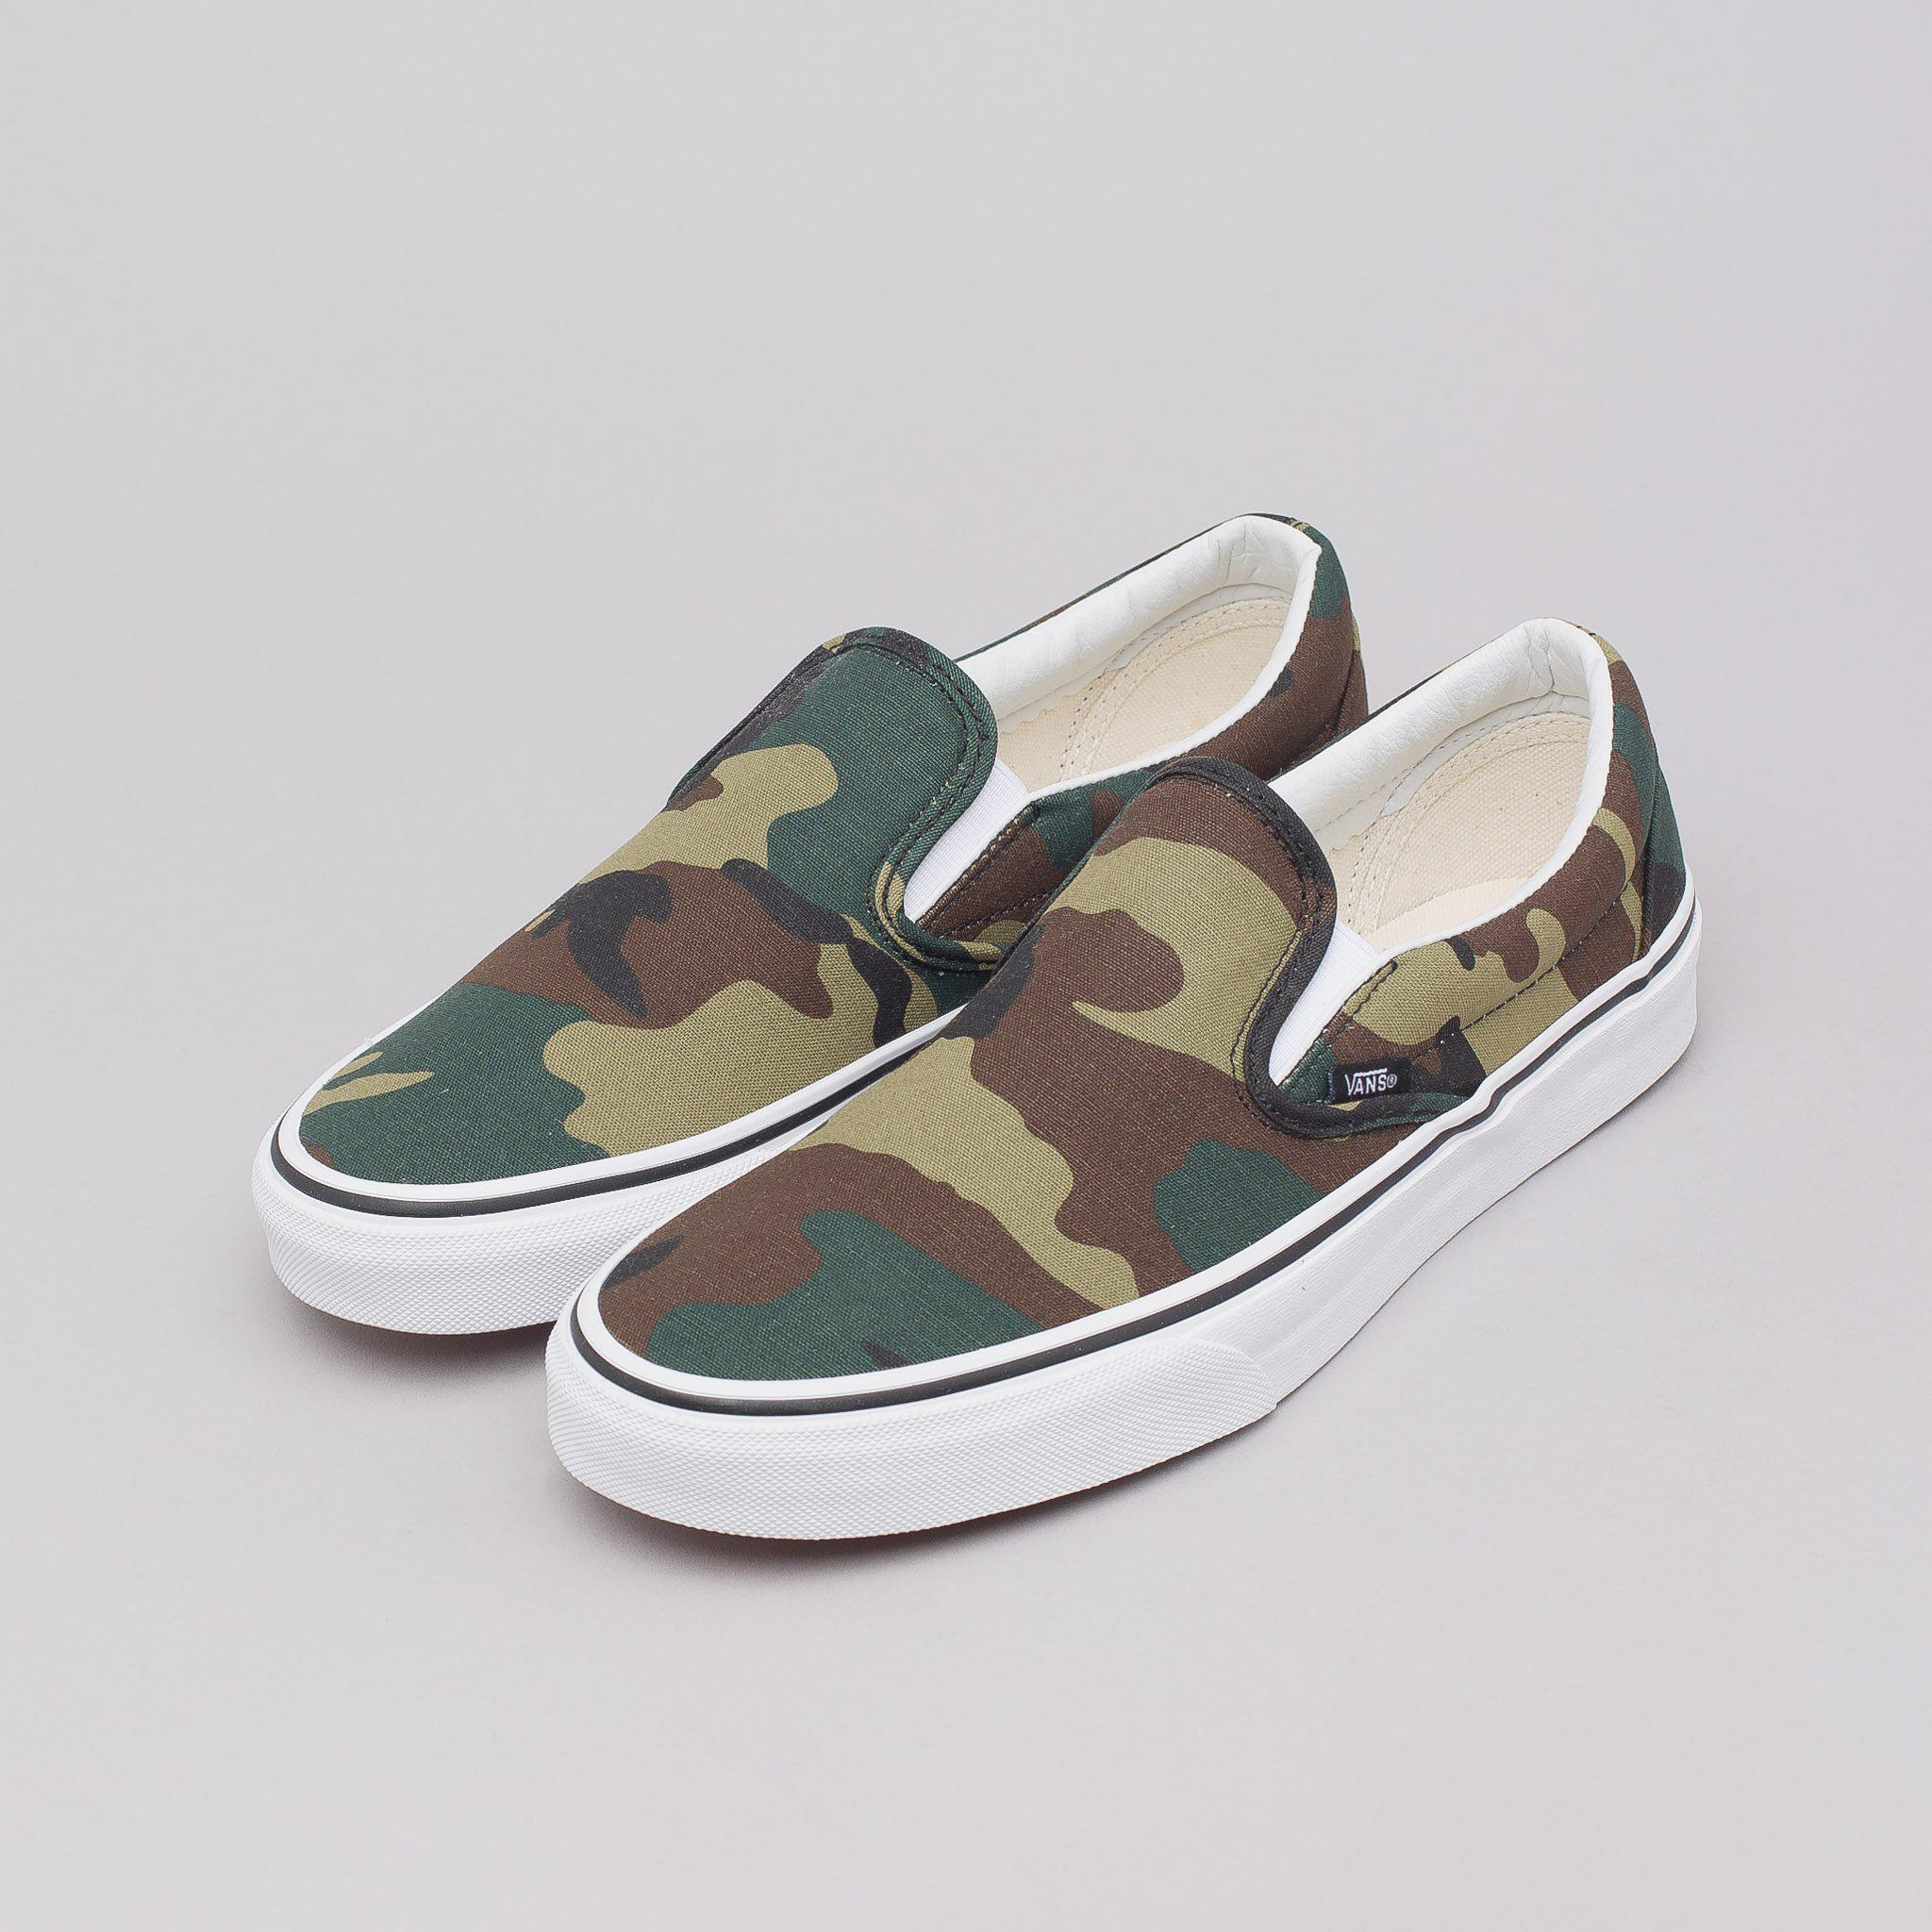 d9e898fc1cb804 Lyst - Vans Classic Slip-on In Woodland Camo for Men